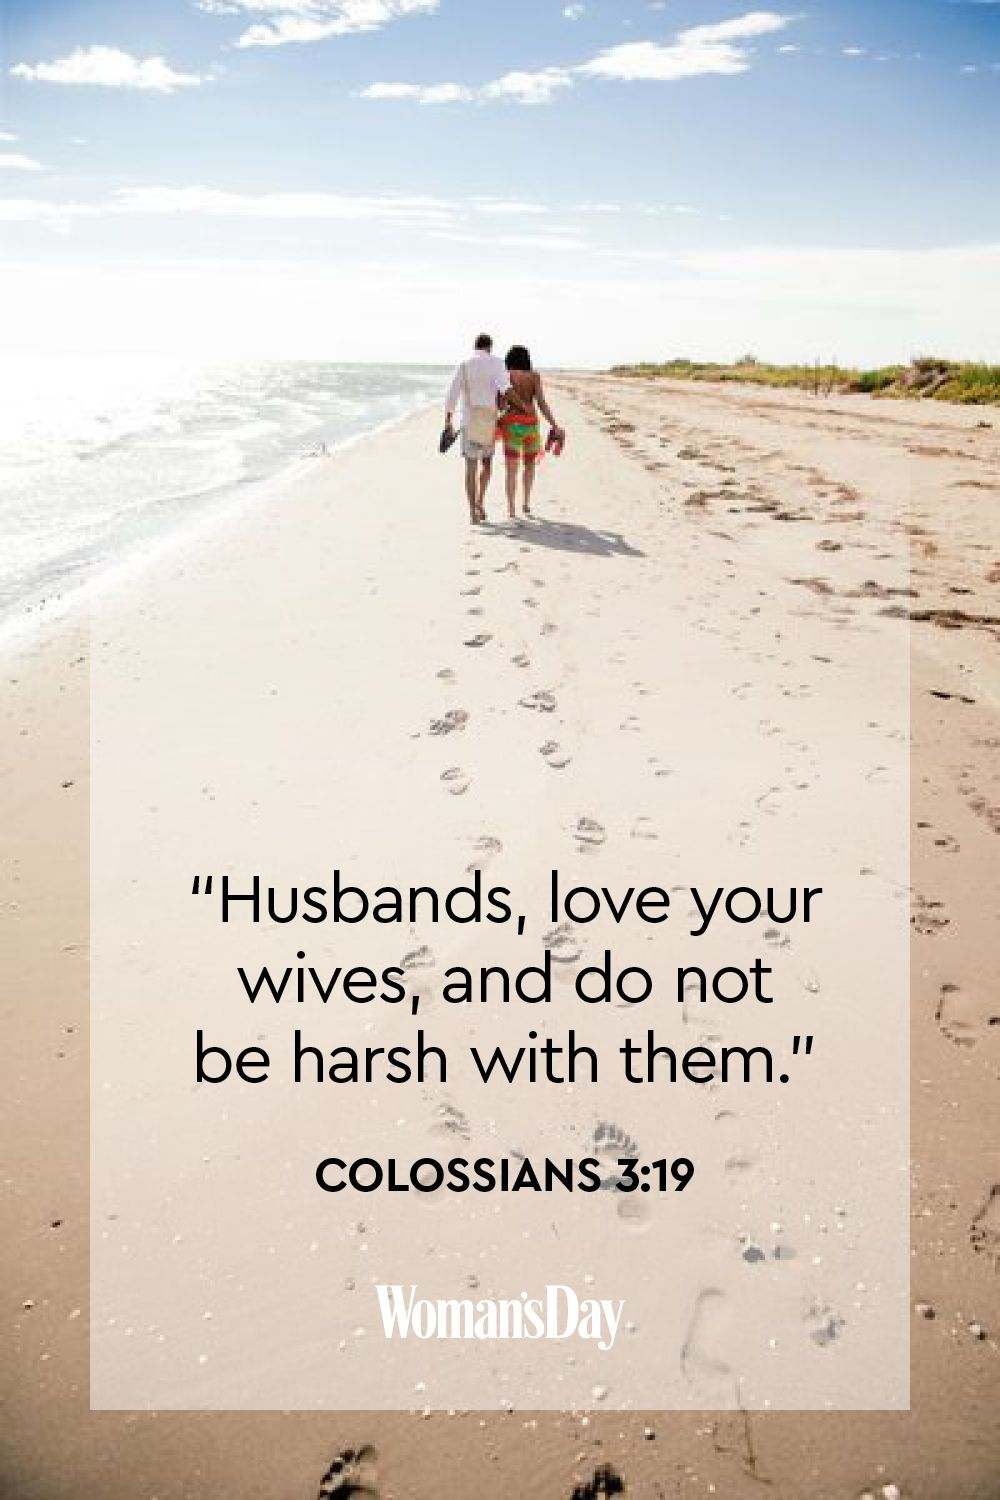 Quotes from the bible about relationships